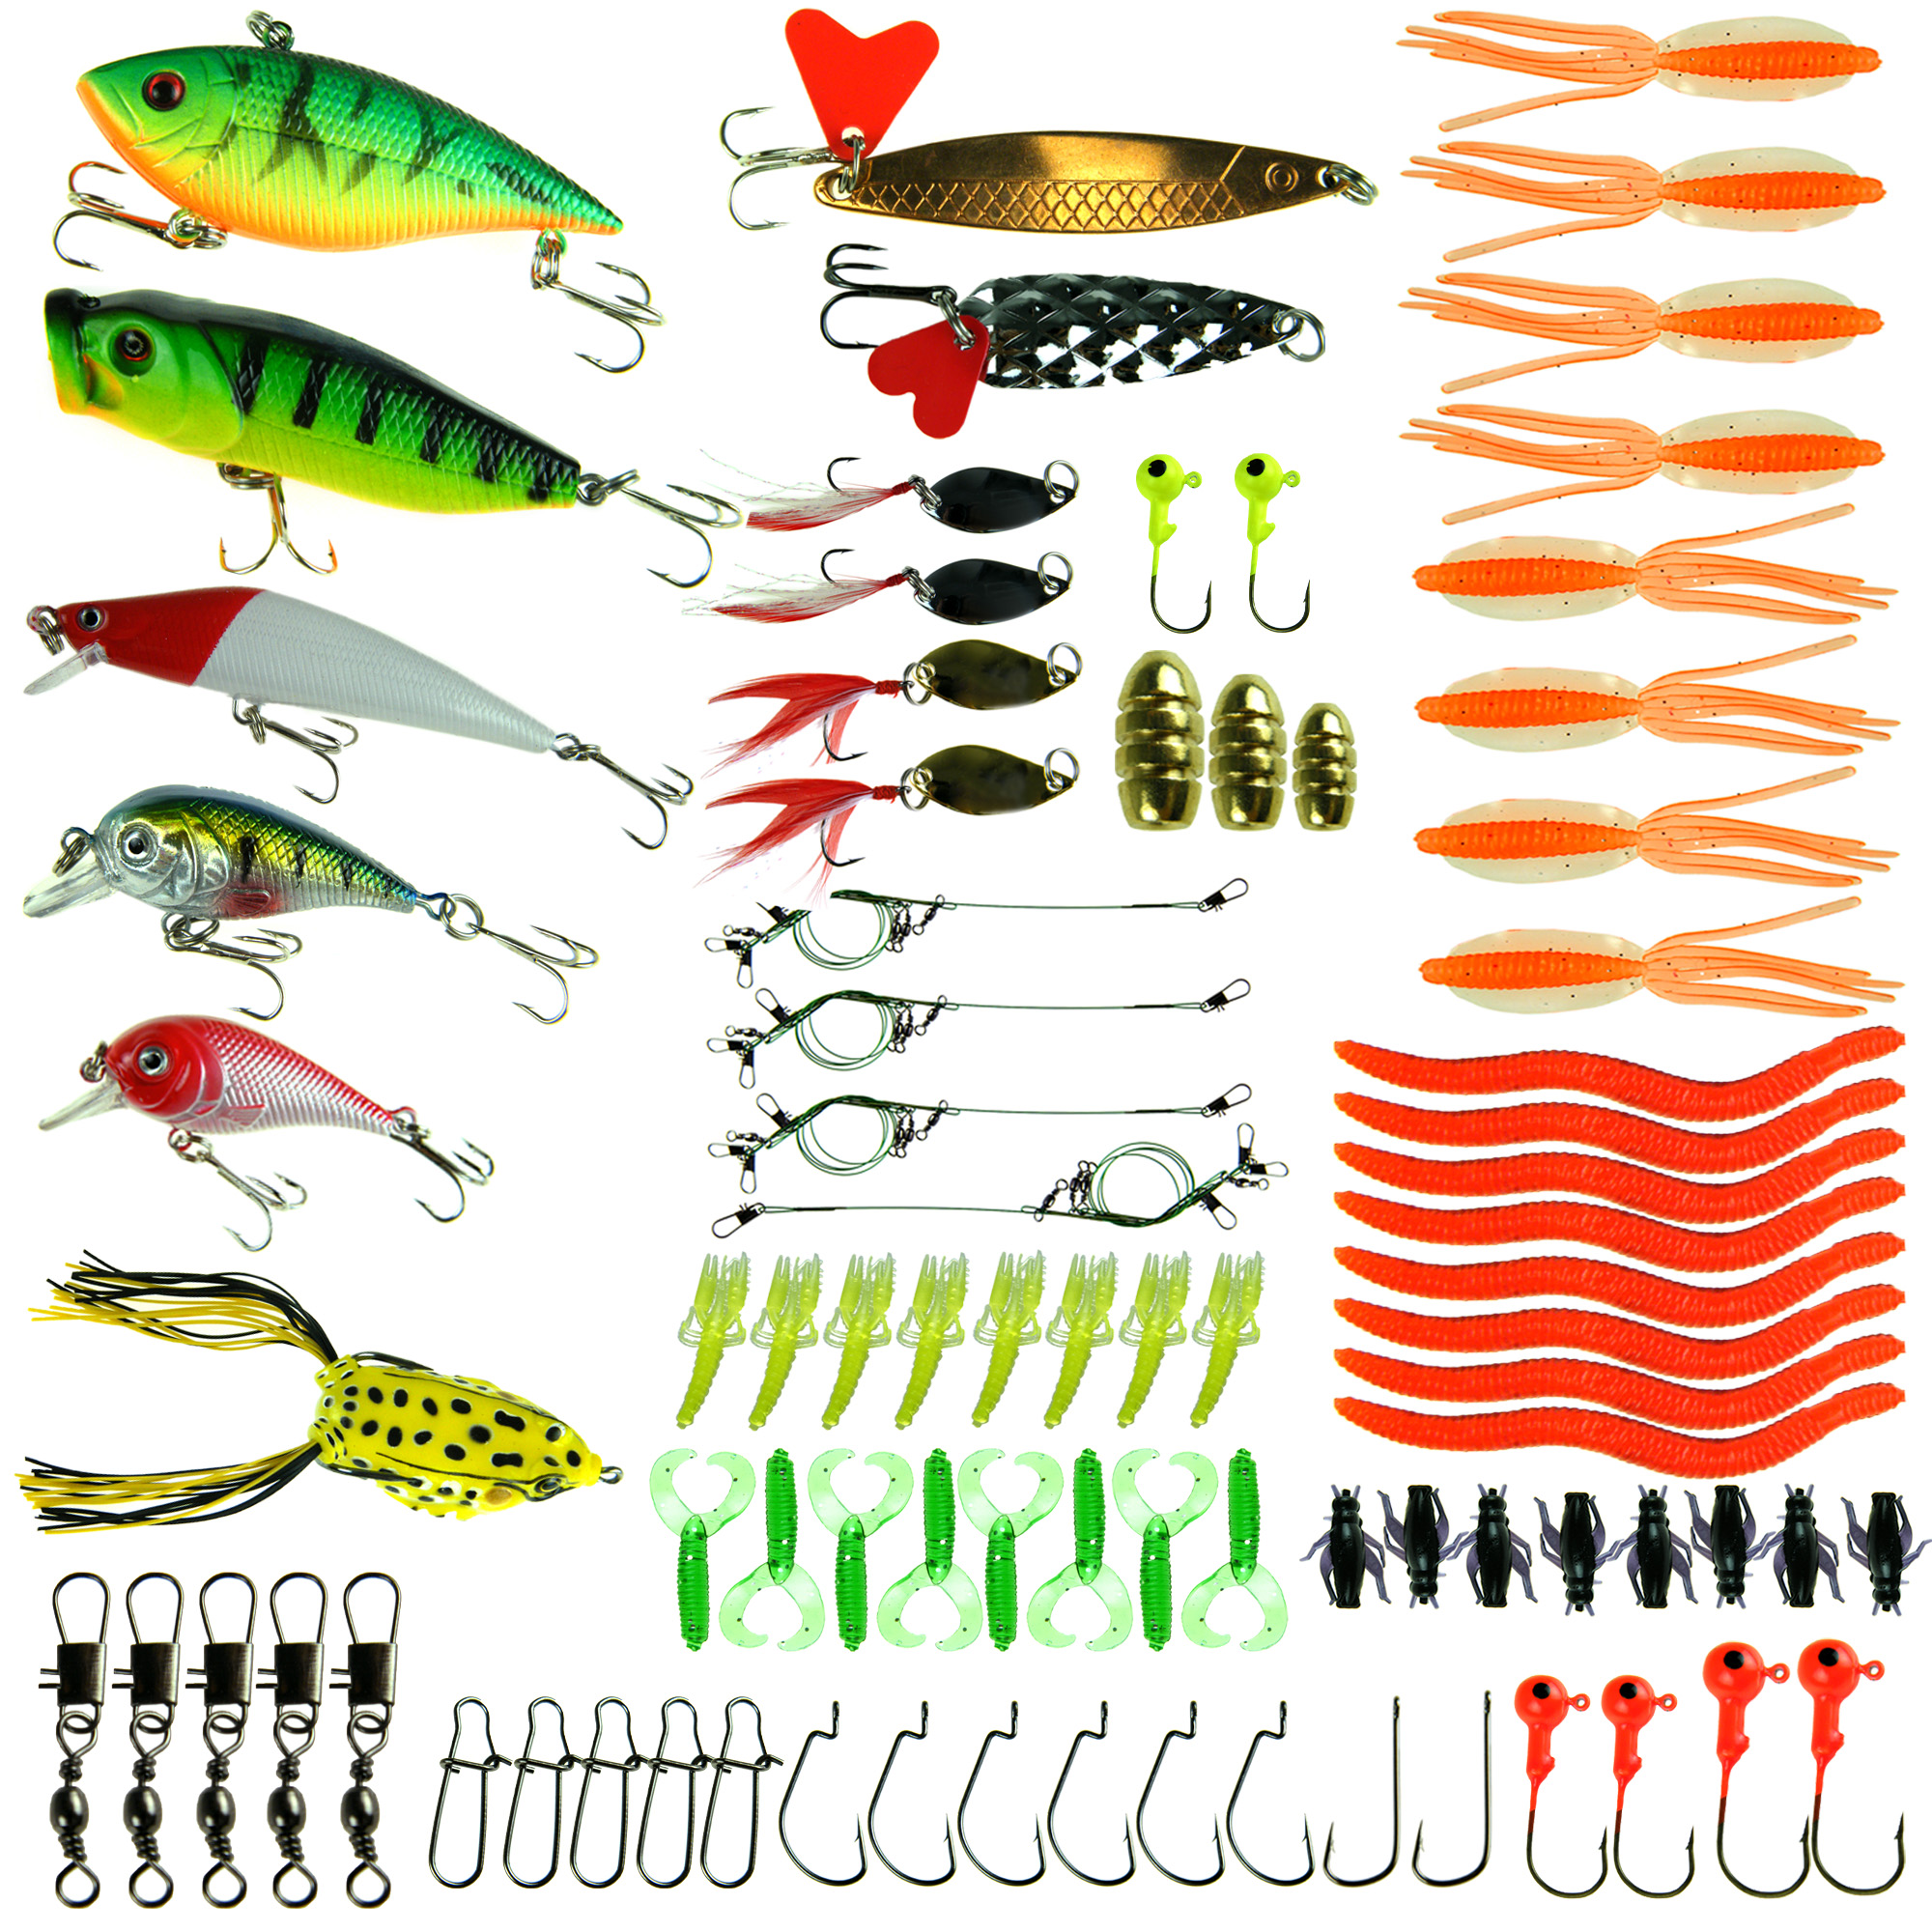 100 Pcs Fishing Lure Kit Soft Baits Insect Warms Lure Crankbaits Spinner Metal Spoon Lures Swivels Snaps Jig Head Hooks by